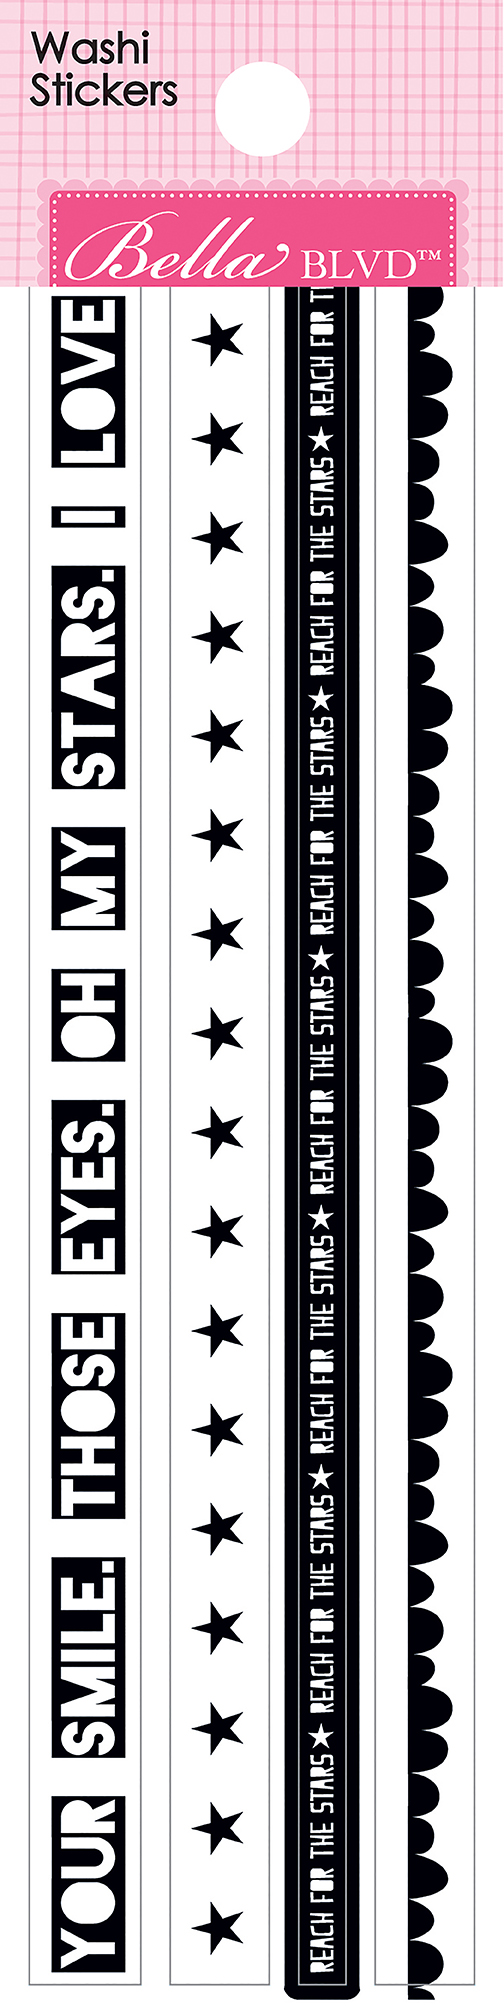 1351_WASHI_STICKERS_BW_FRONT